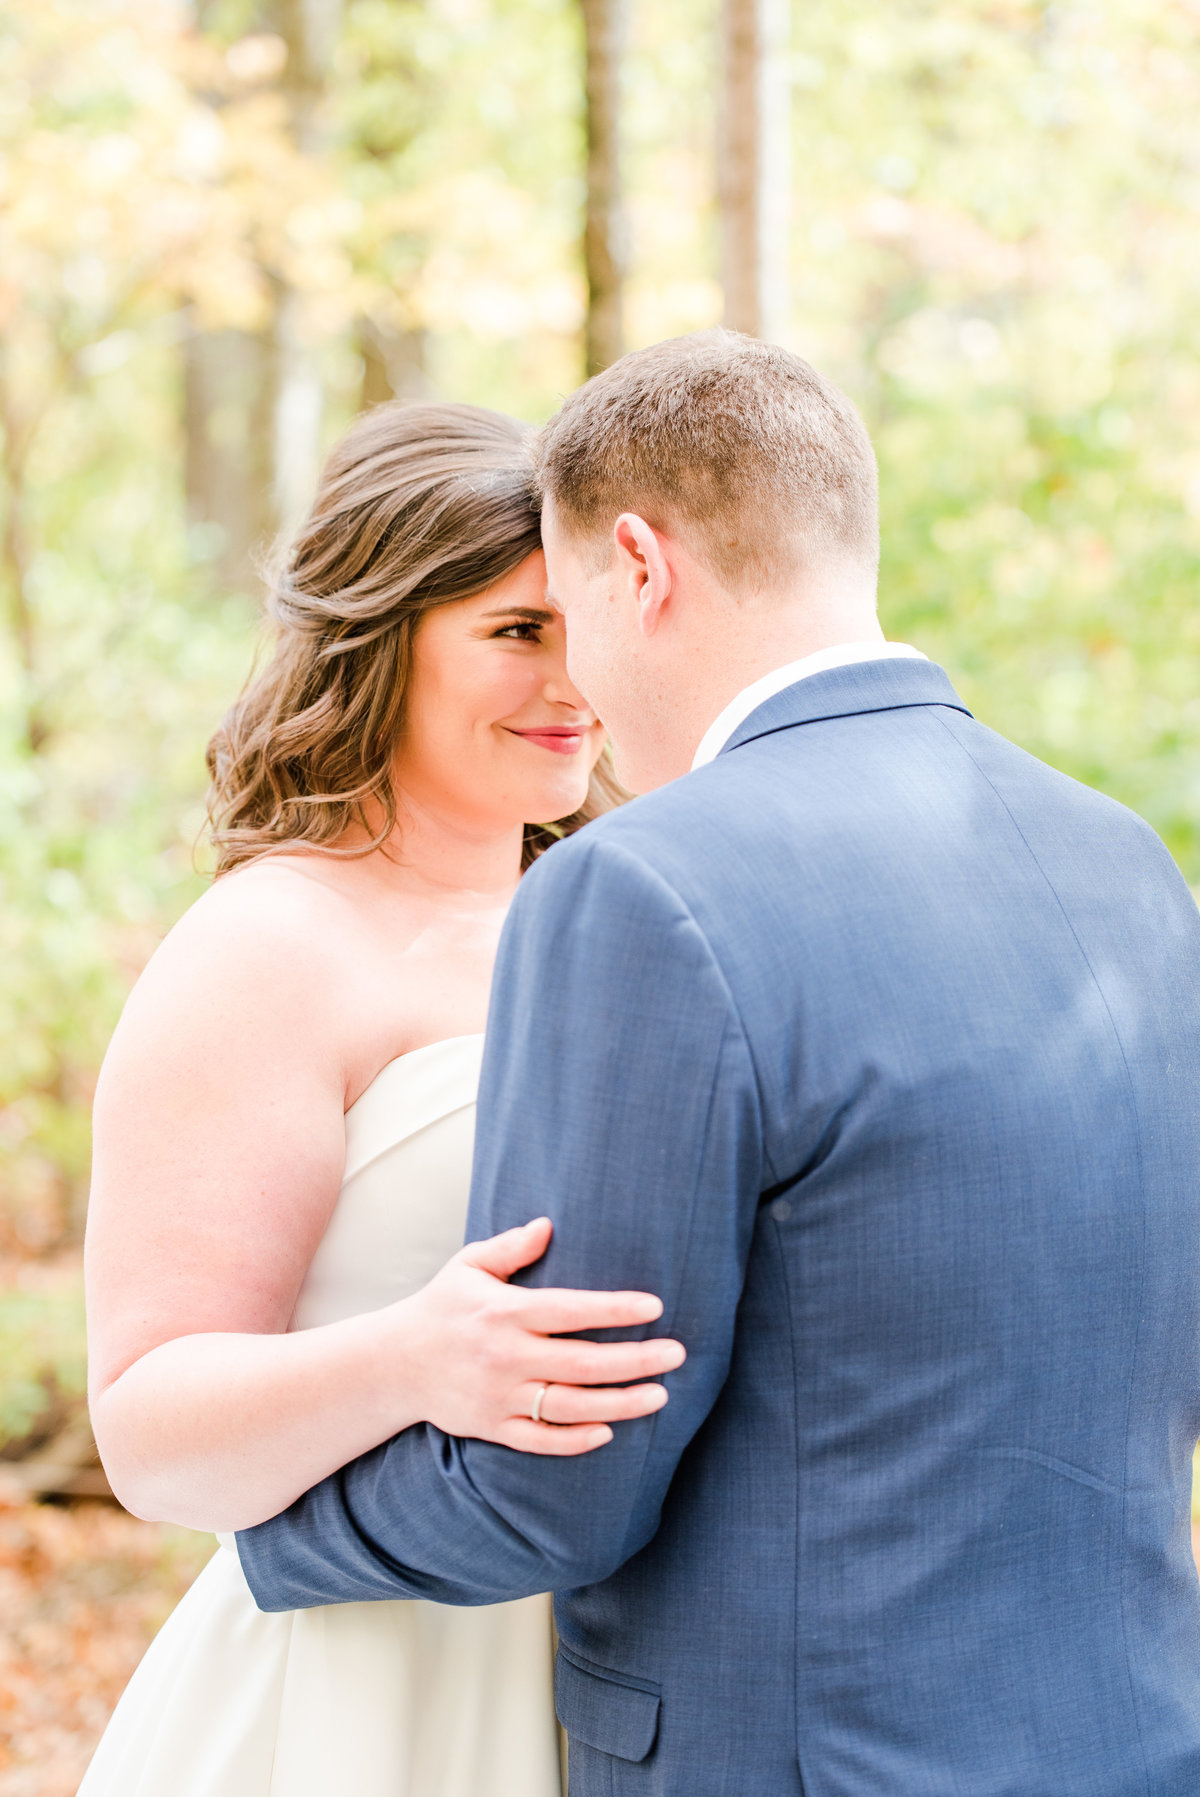 Newlywed Portraits Cait Potter Creative LLC Milltop Potters Bridge Noblesville Square Courthouse Wedding-3